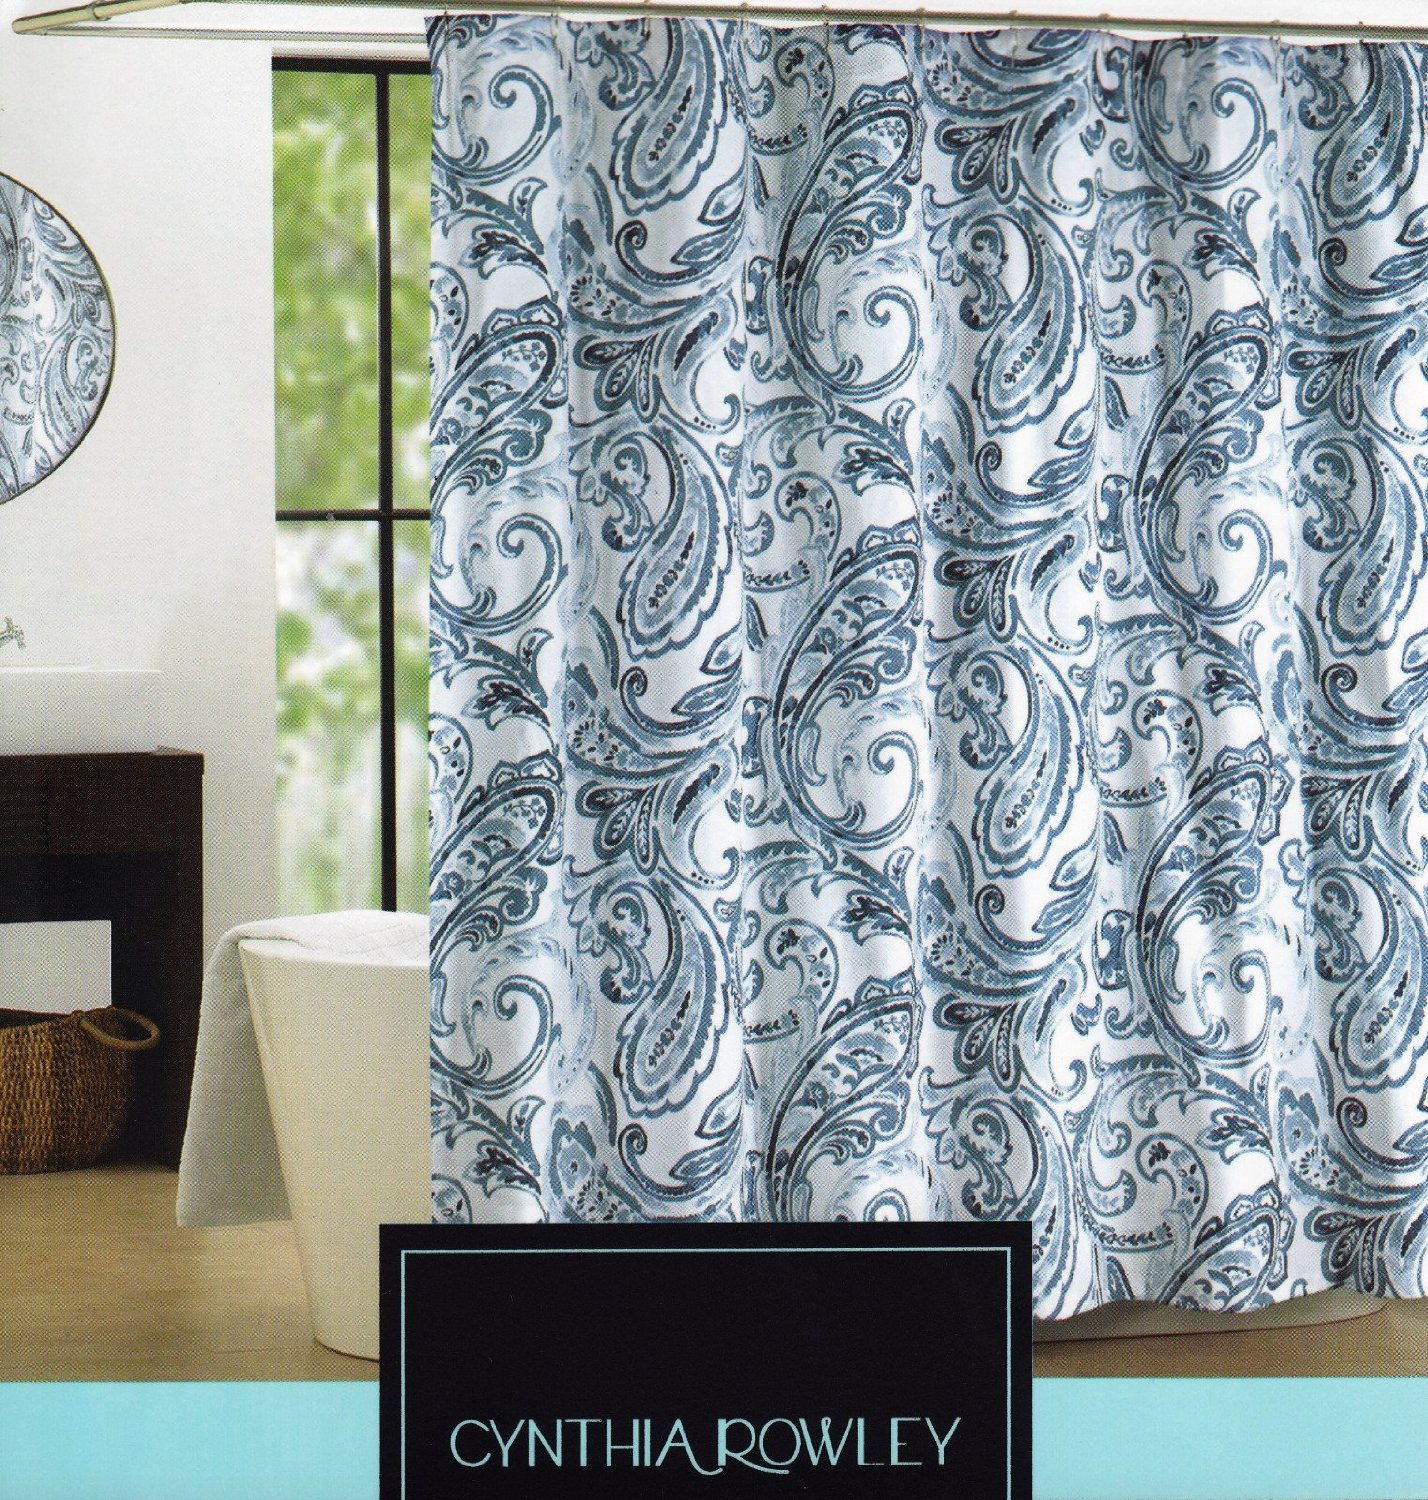 Cynthia Rowley Shower Curtain Maeve Blue And White With